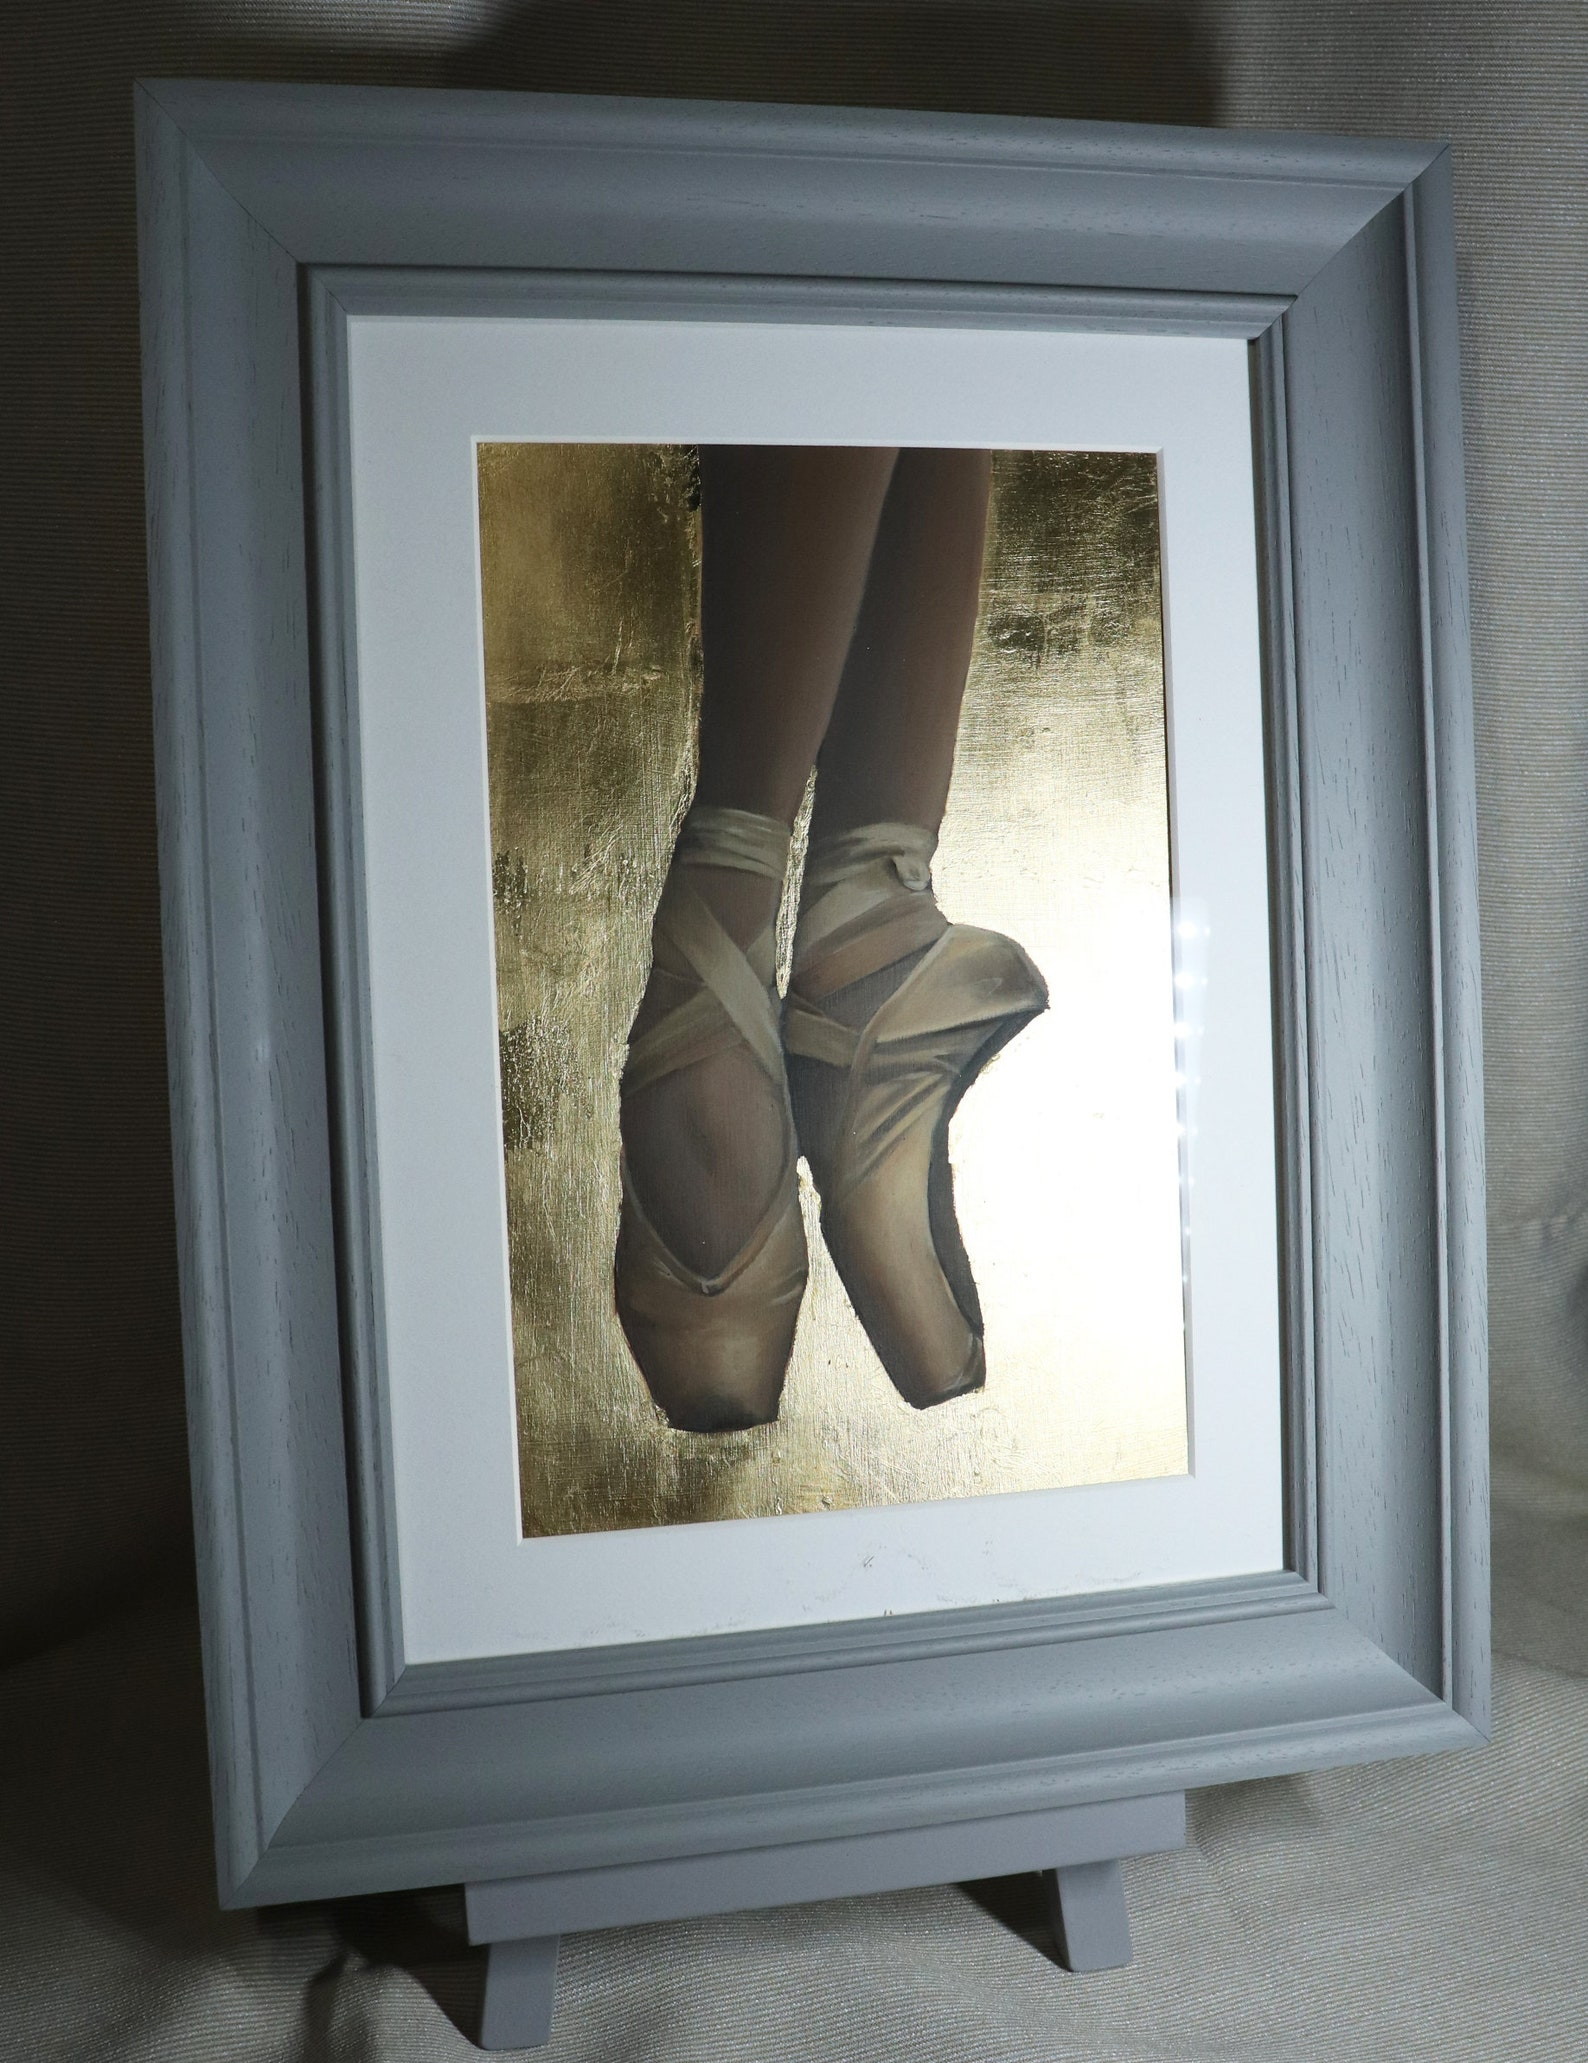 ballerina on pointe, 24k gold leaf, ballet shoes painting, framed artwork, art